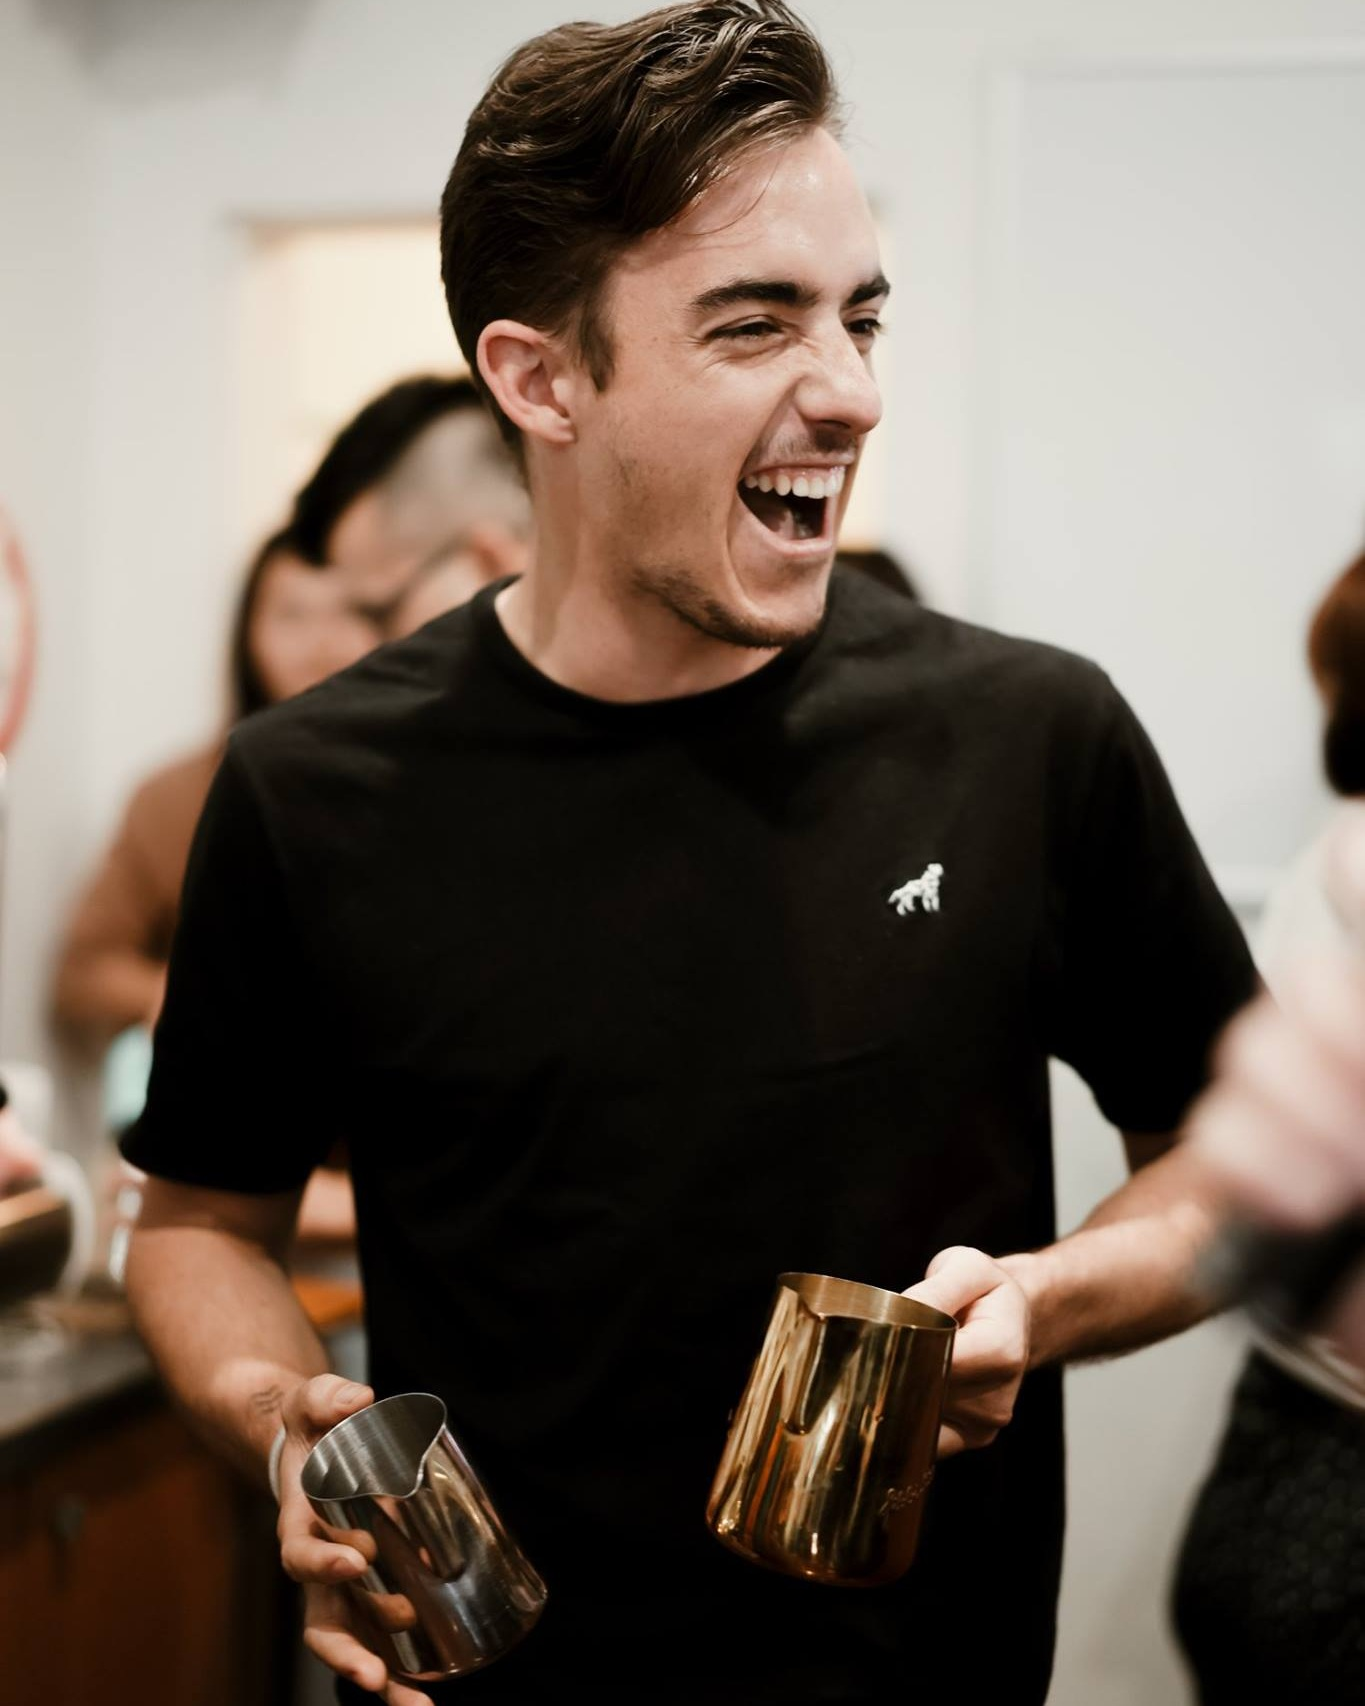 Calibration what..? - We chatted to Matt about being the Calibration Barista at this years barista comps and what goes into competing in the coffee industry!